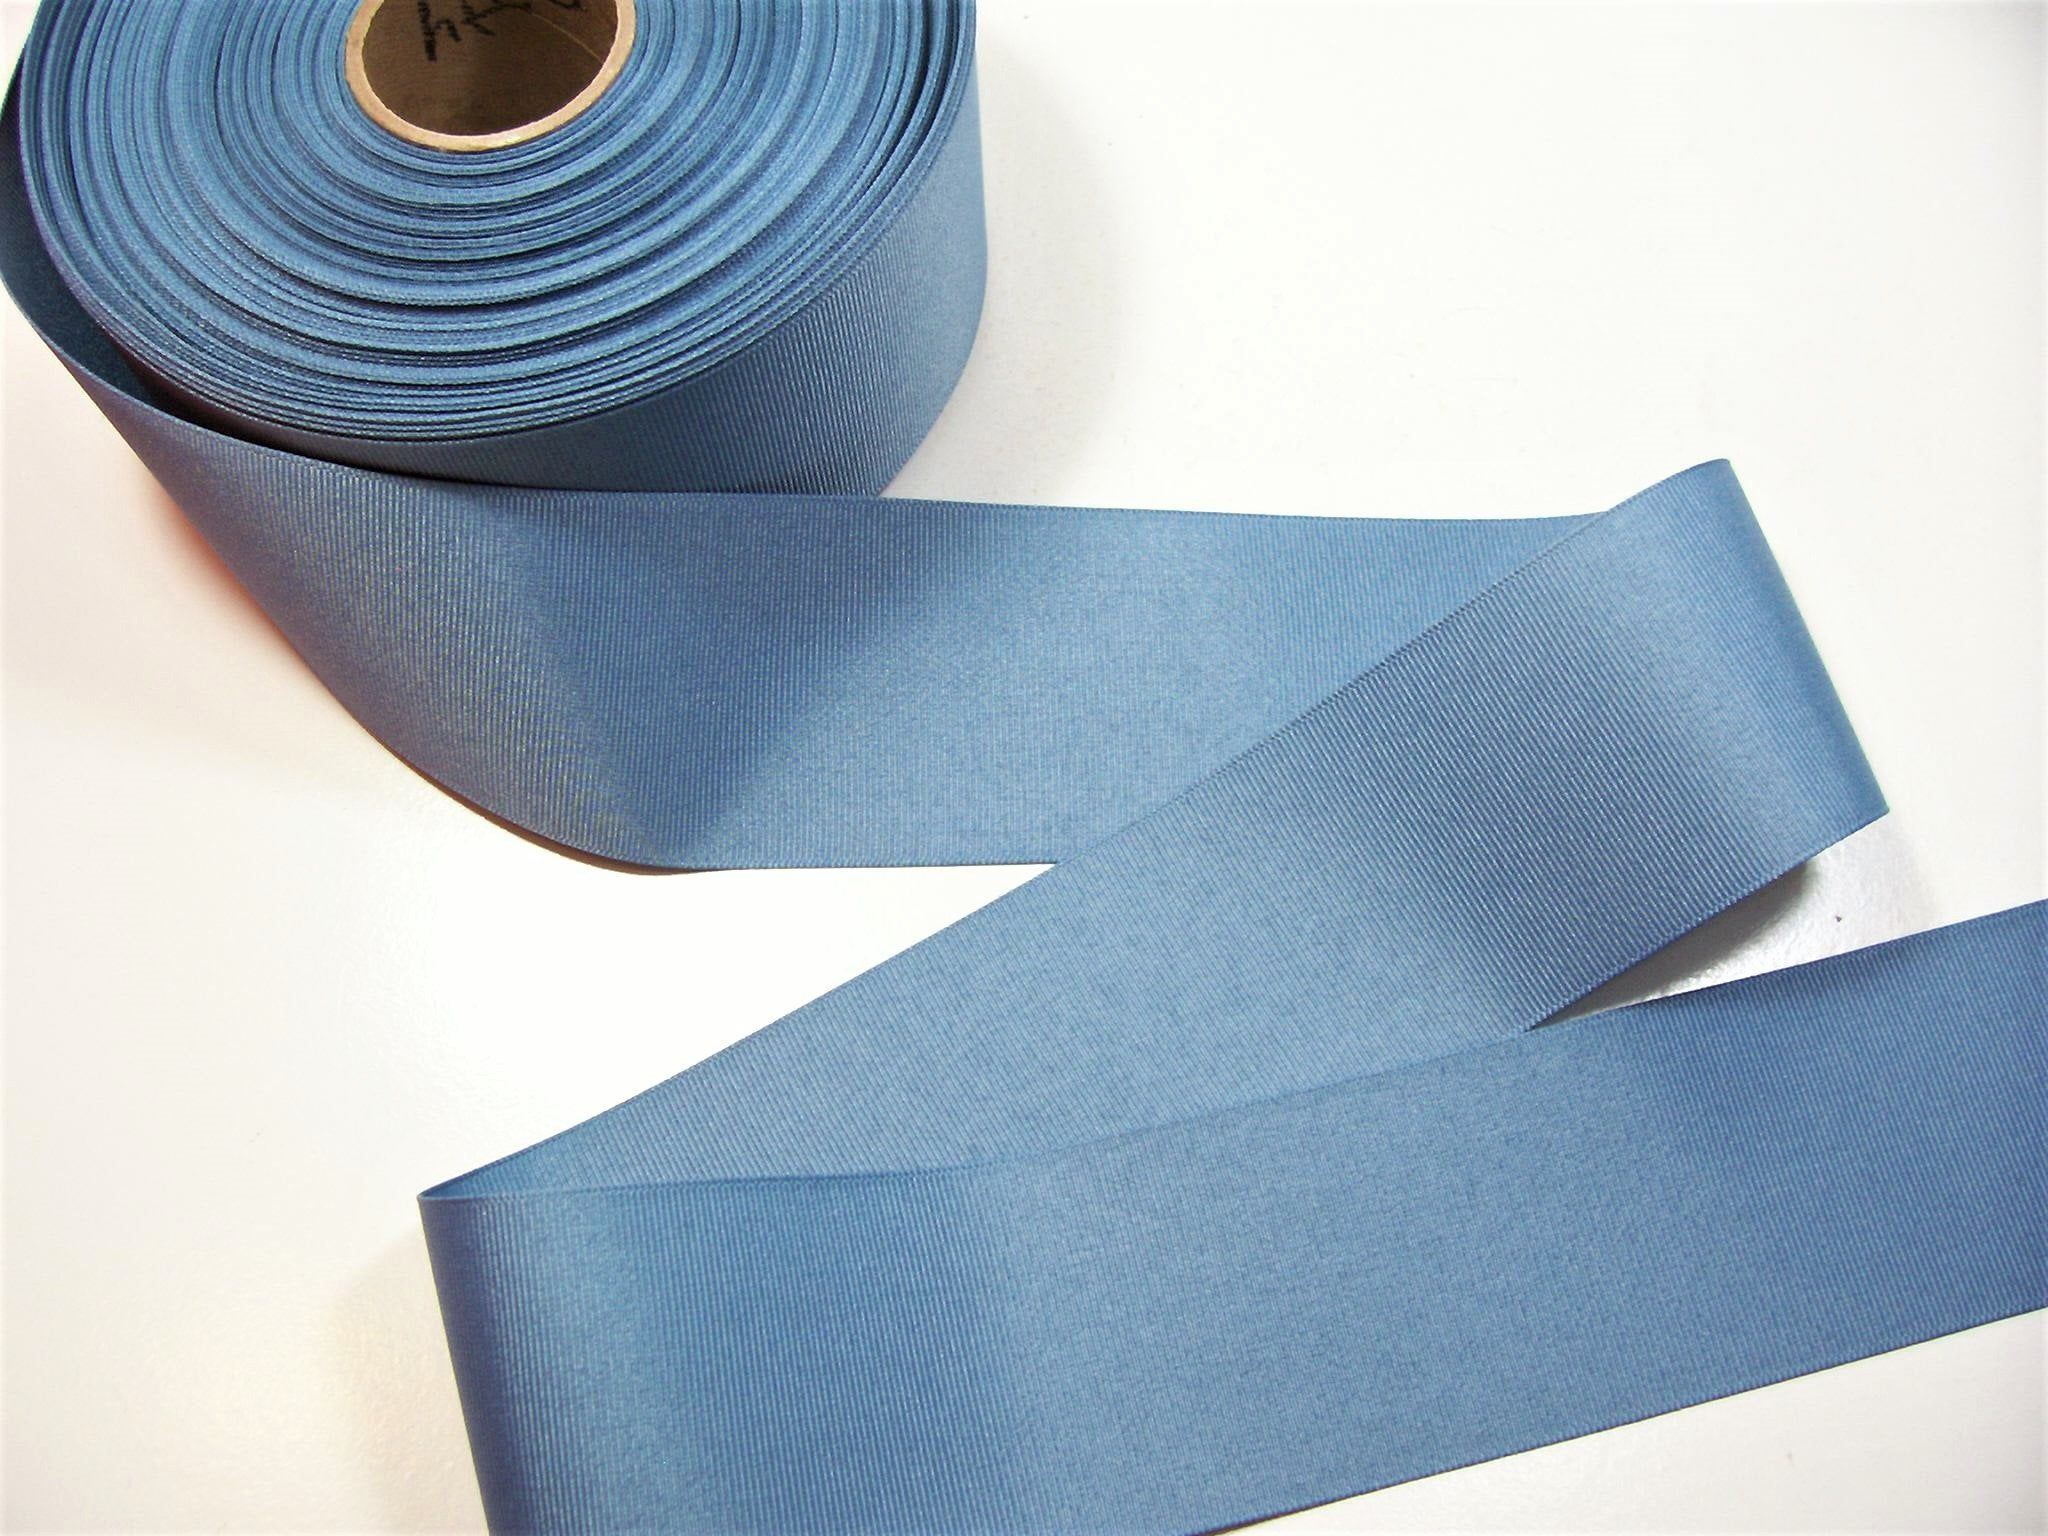 Blue Ribbon, Dusty Blue Grosgrain Ribbon 2 1/4 inches wide x 10 Yards, Country Blue